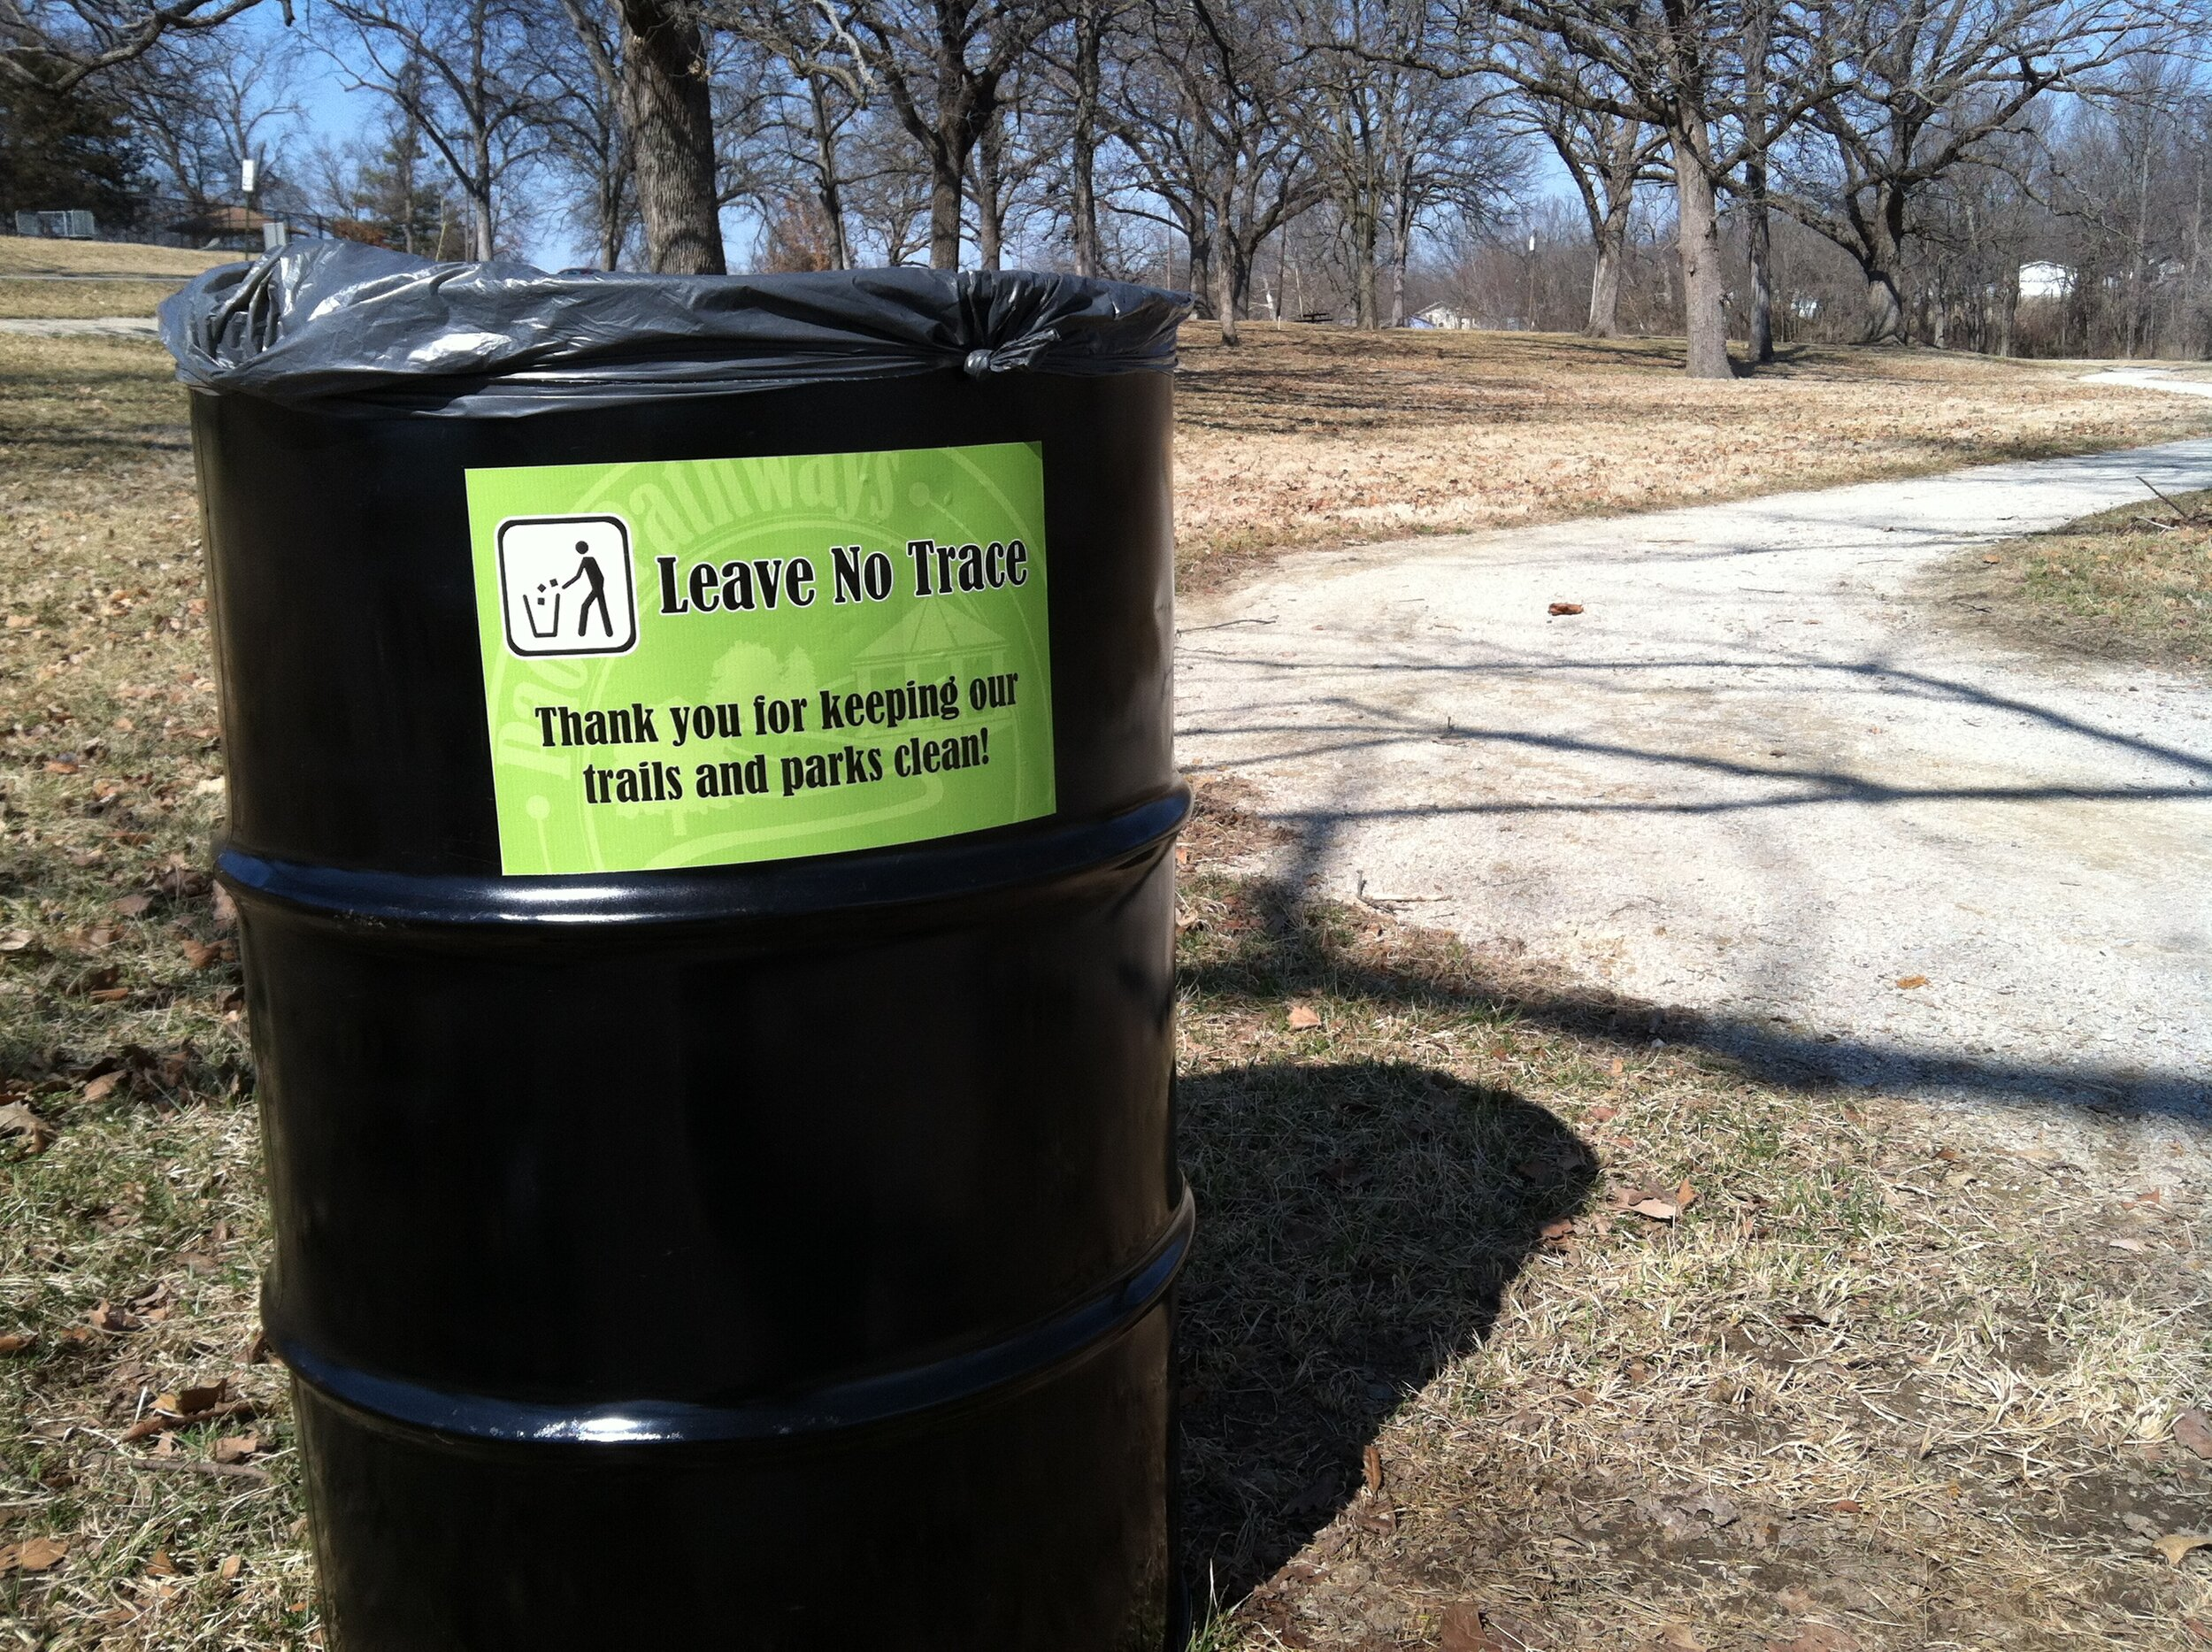 Adhesive labels attached to additional trash bins along trails